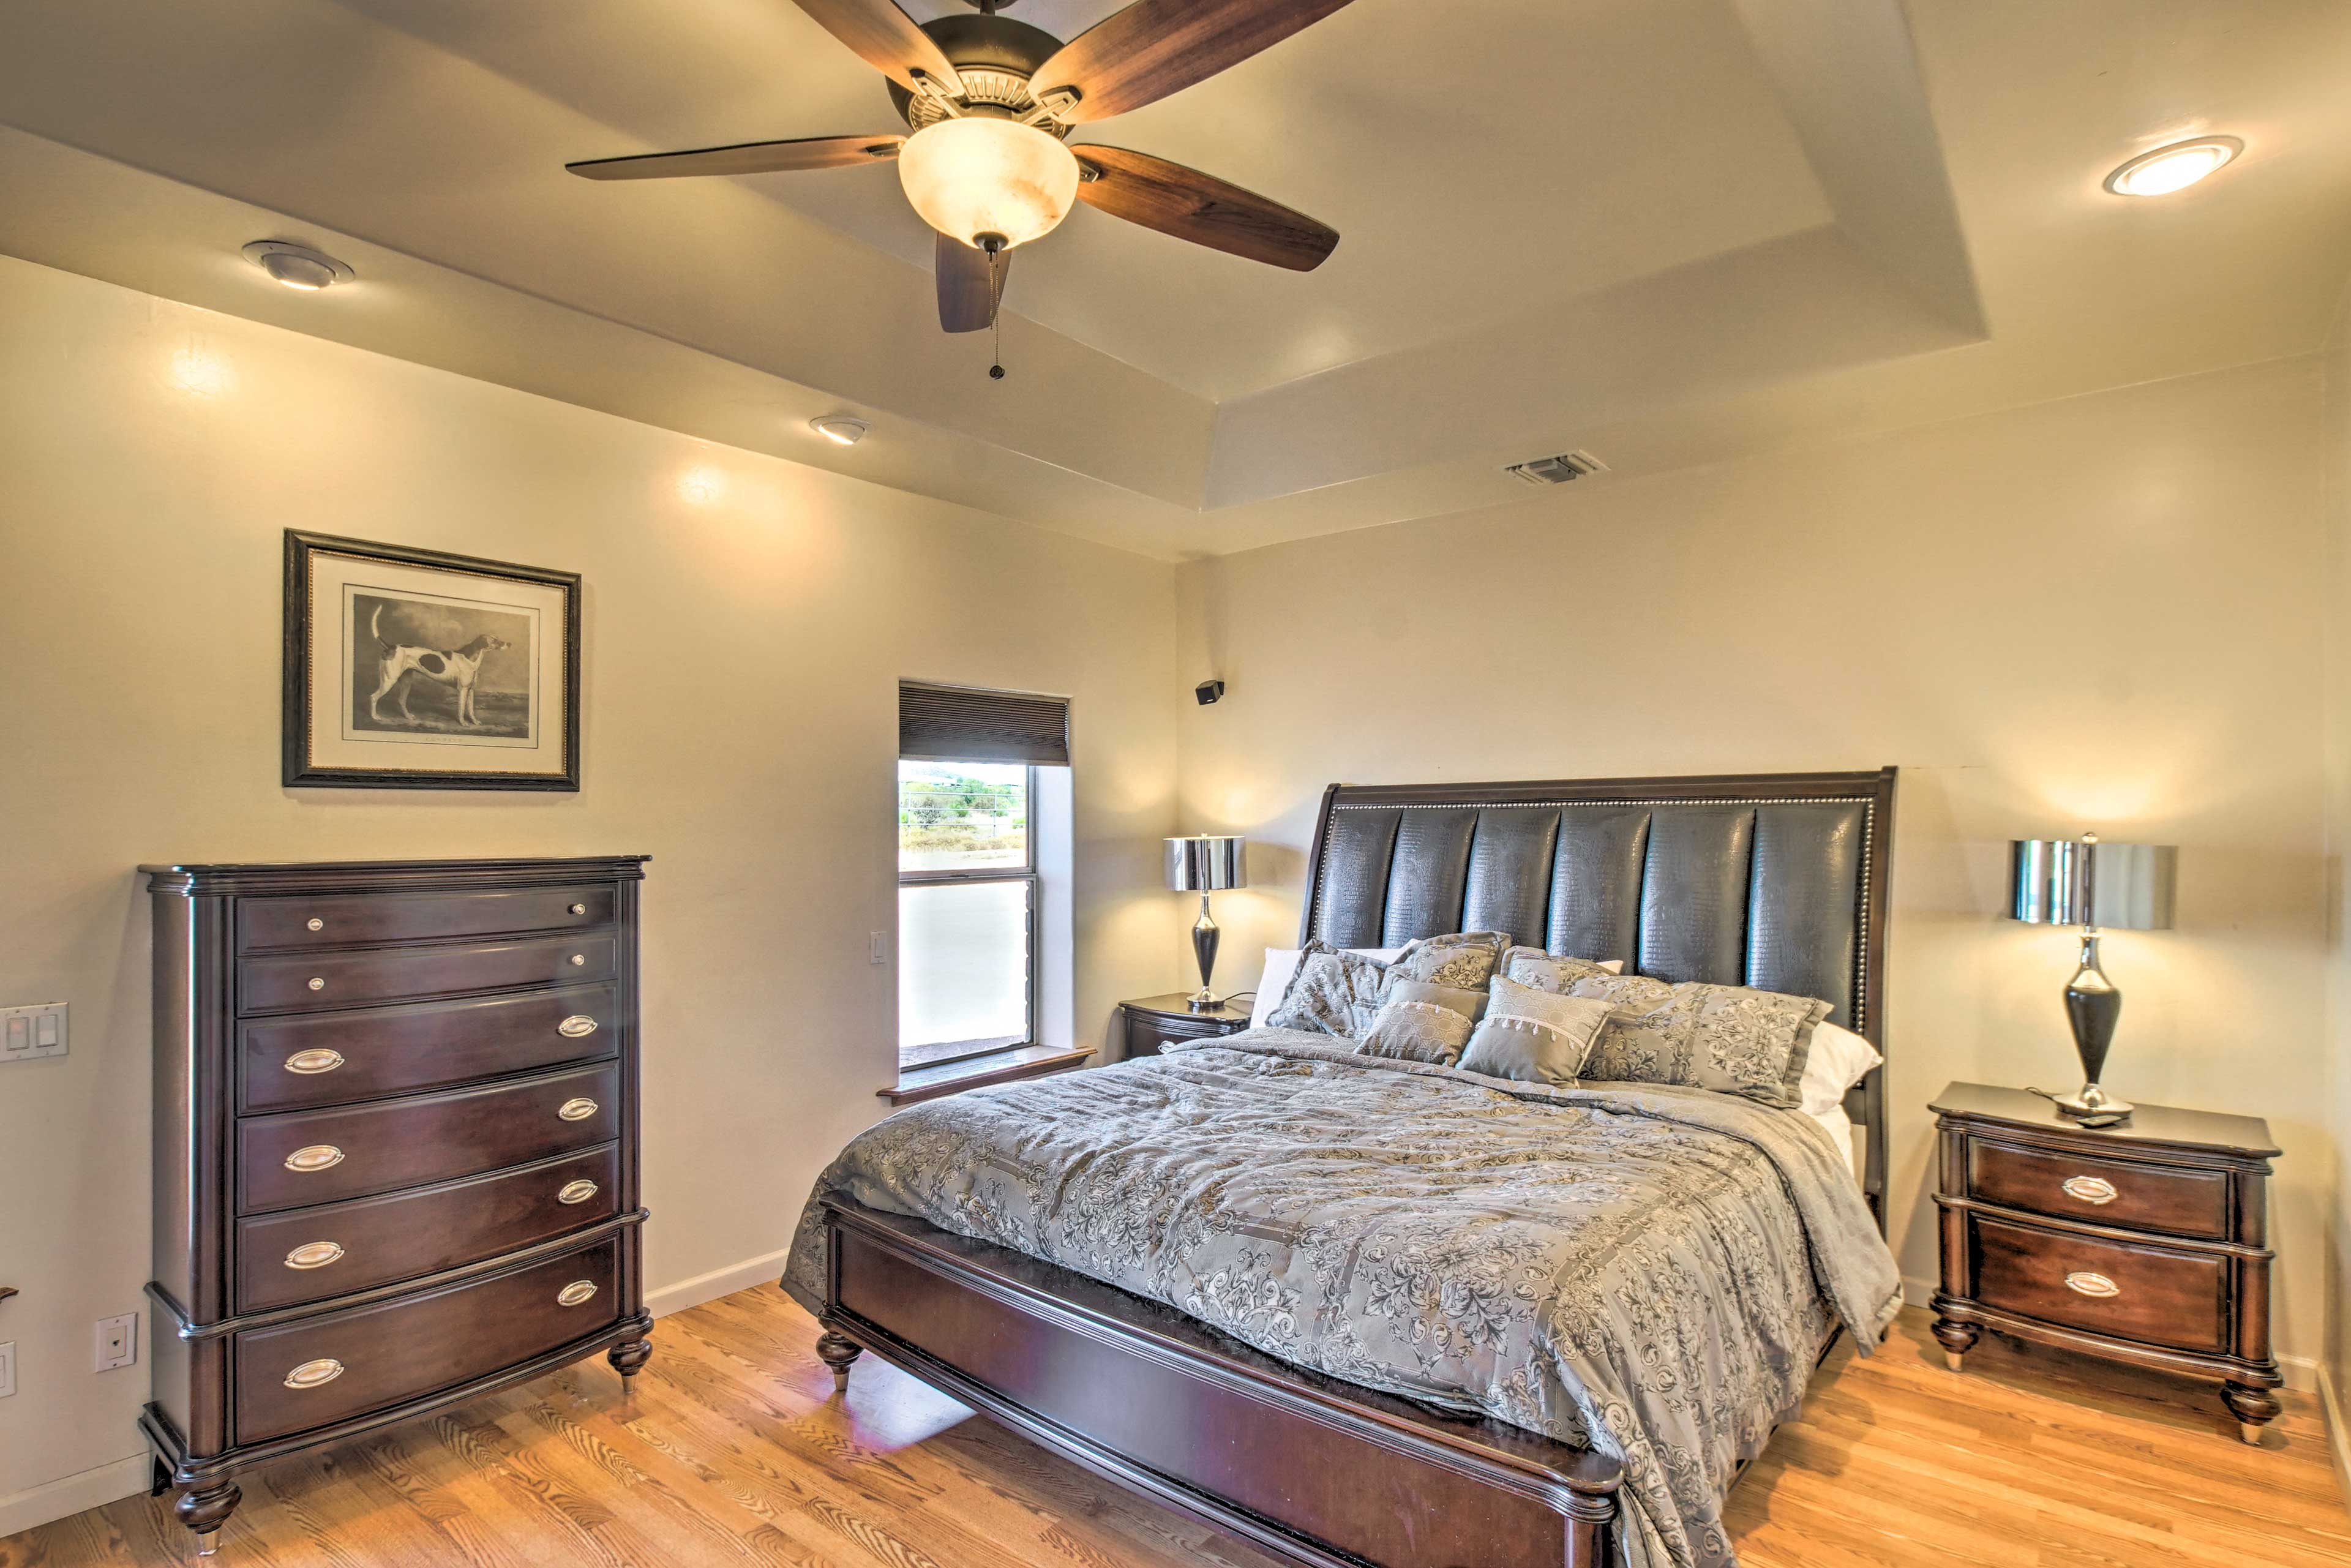 This master bedroom features a lovely king bed.